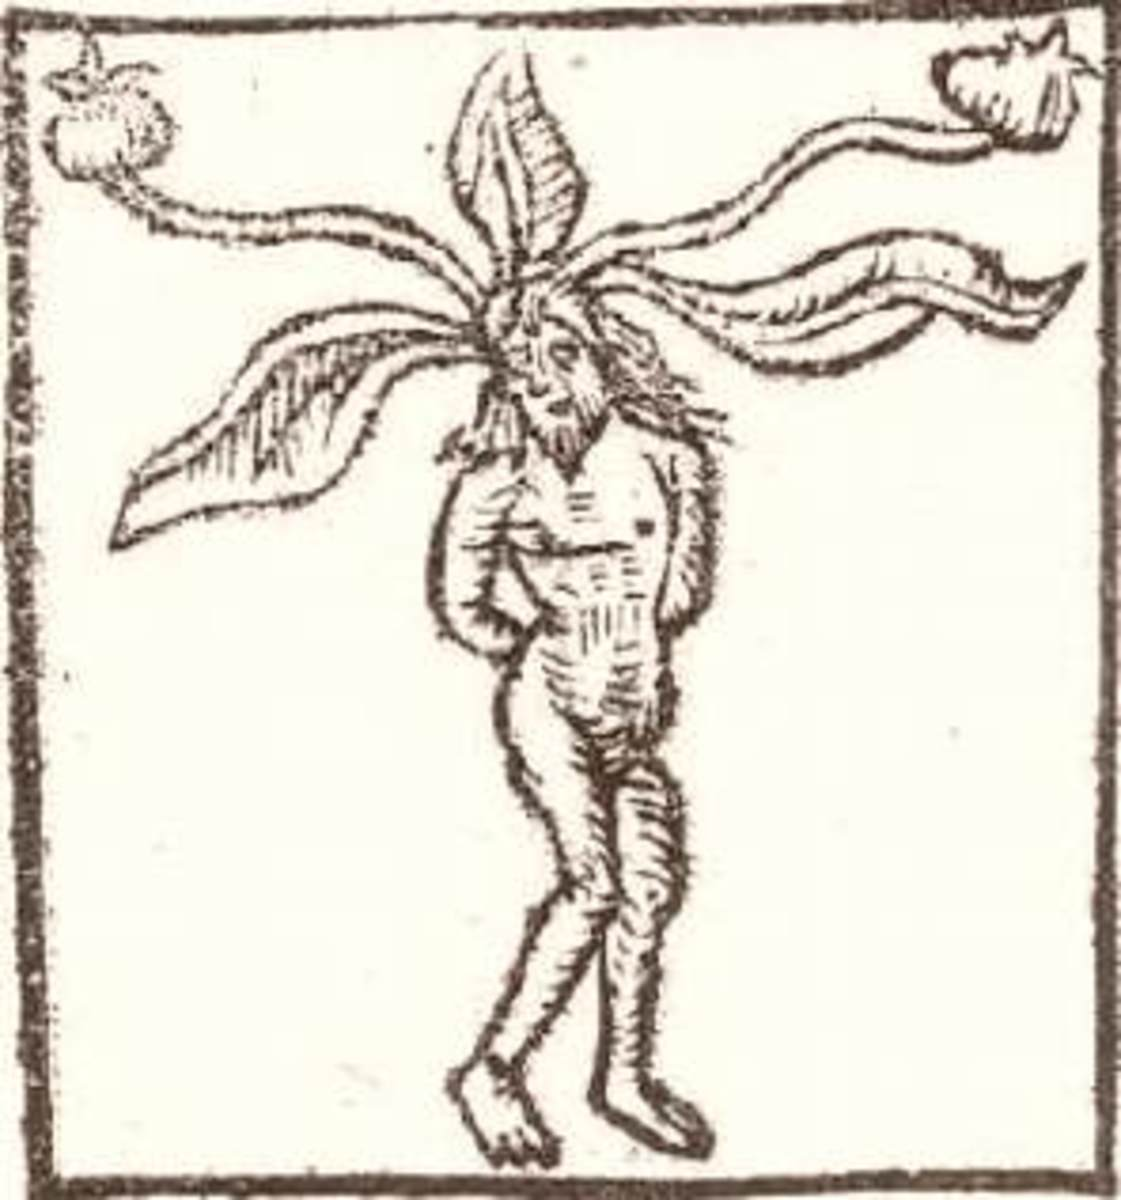 Medievel depiction of a mandrake root.